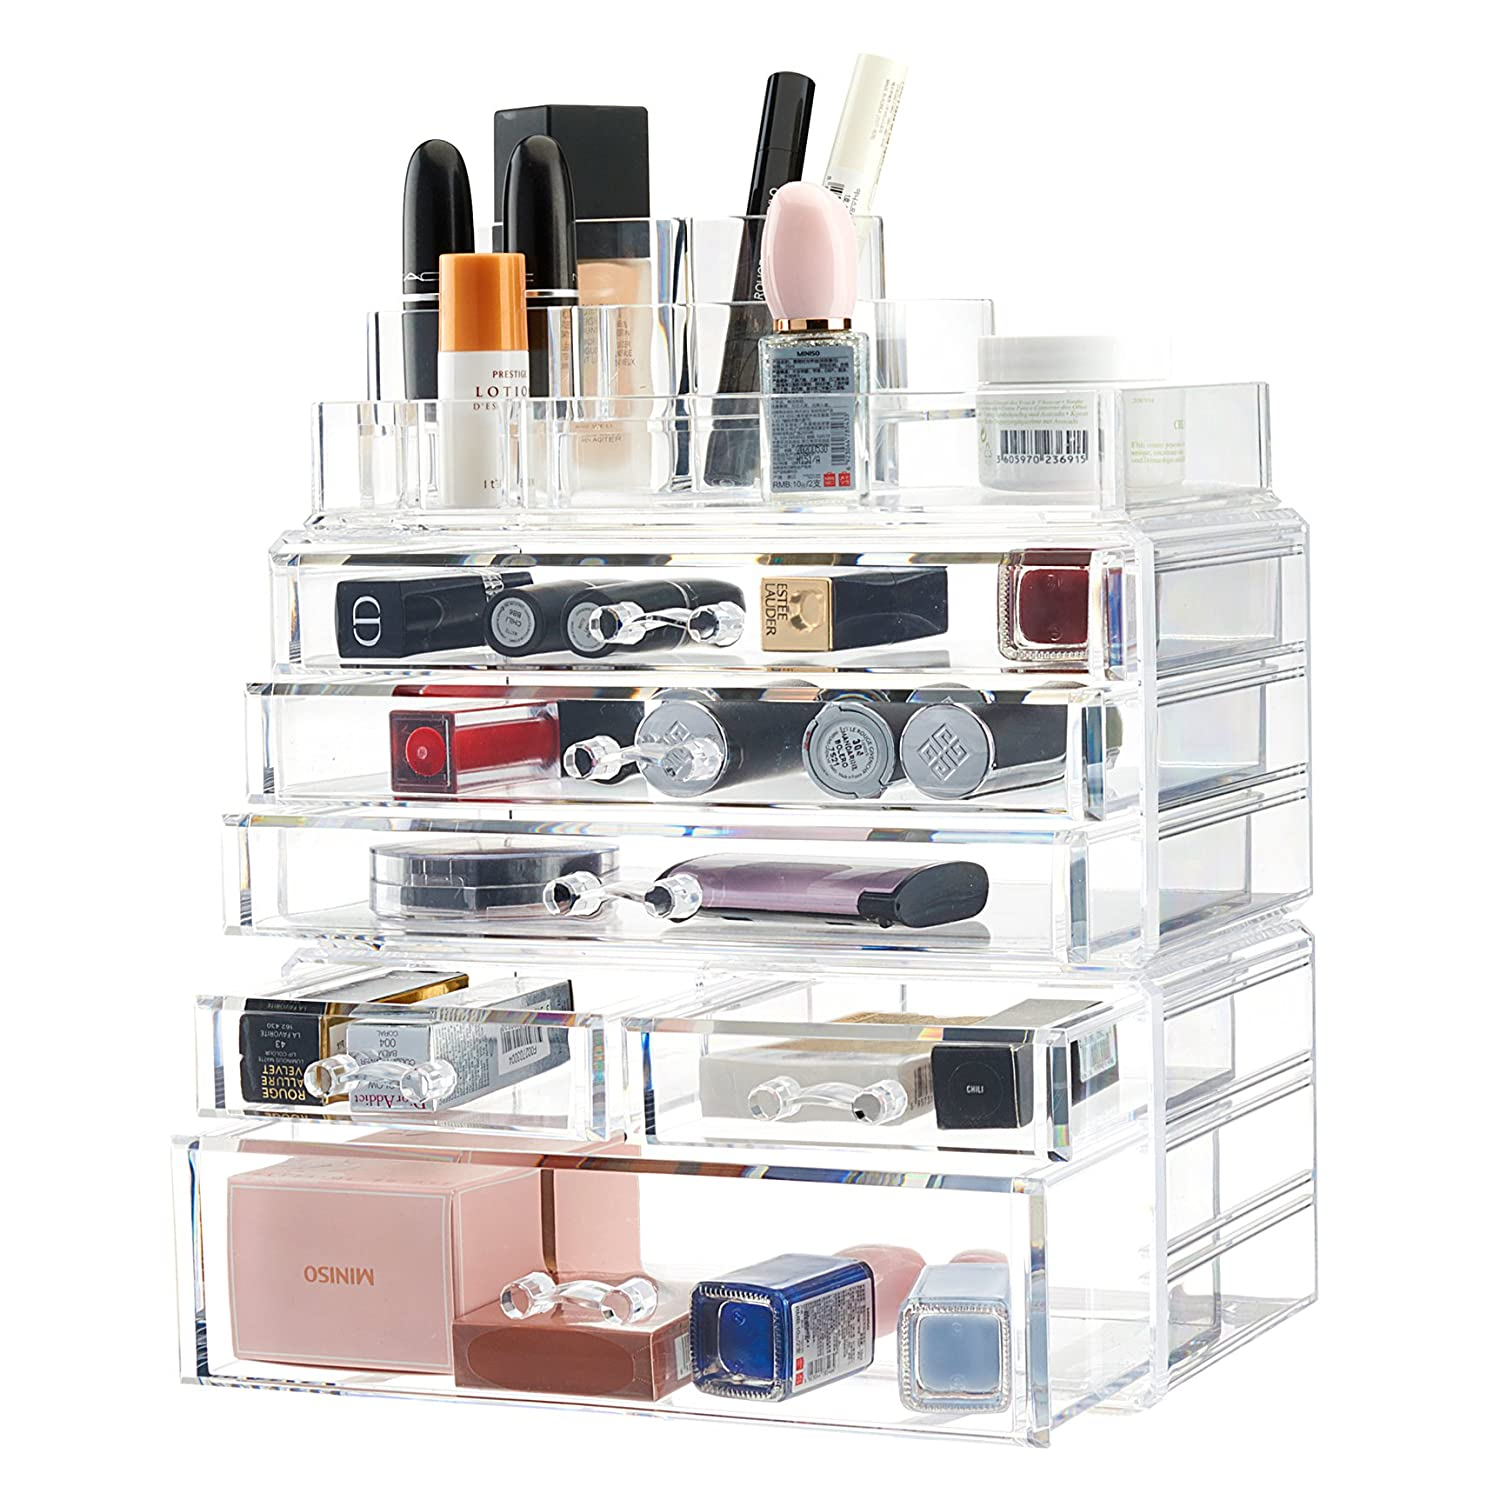 TWING Premium Acrylic Makeup Jewelry Organizer Clear 9.3x5.3x11.3 inches Cosmetic Storage Thick and Crystal Acrylic COMIN18JU090764